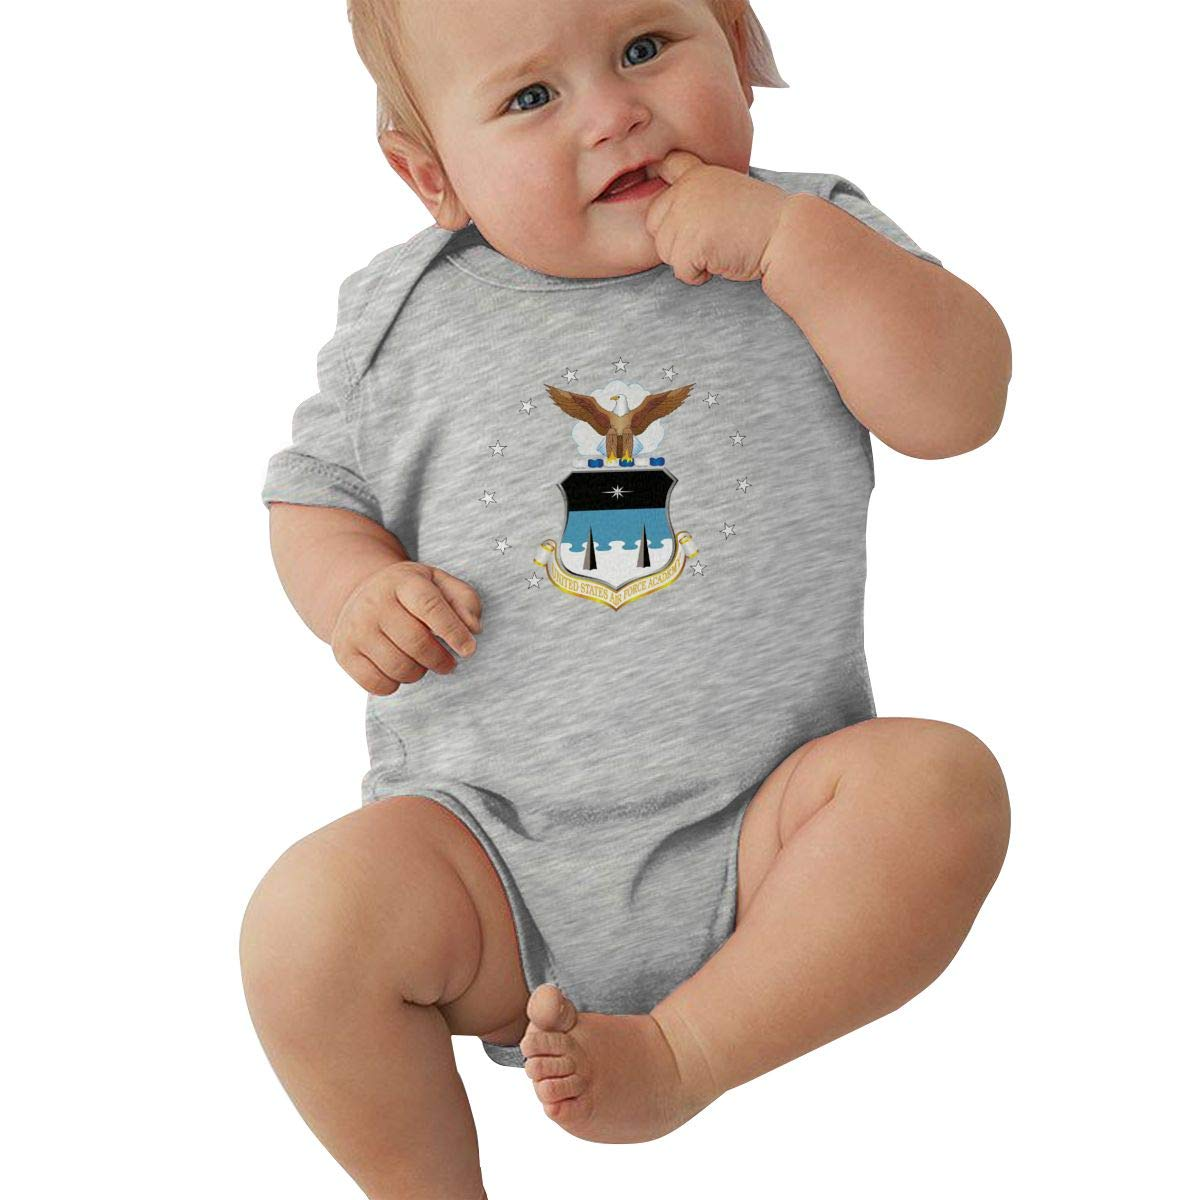 Dfenere States Air Force Academy Logo Retro Newborn Baby Short Sleeve Bodysuit Romper Infant Summer Clothing Black